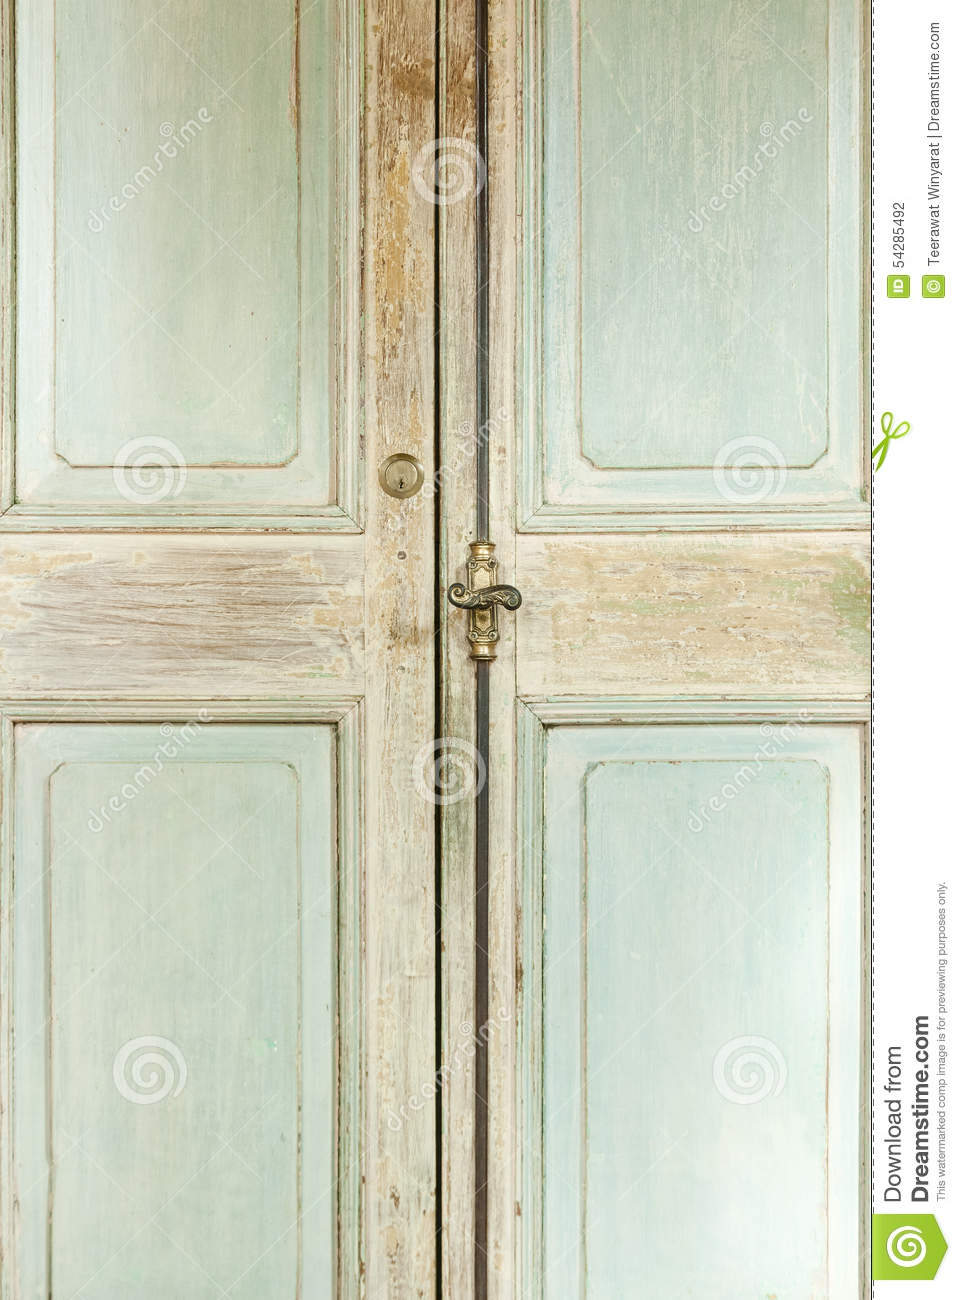 Vintage Wooden Door Frame, Background Texture Stock Photo - Image of ...